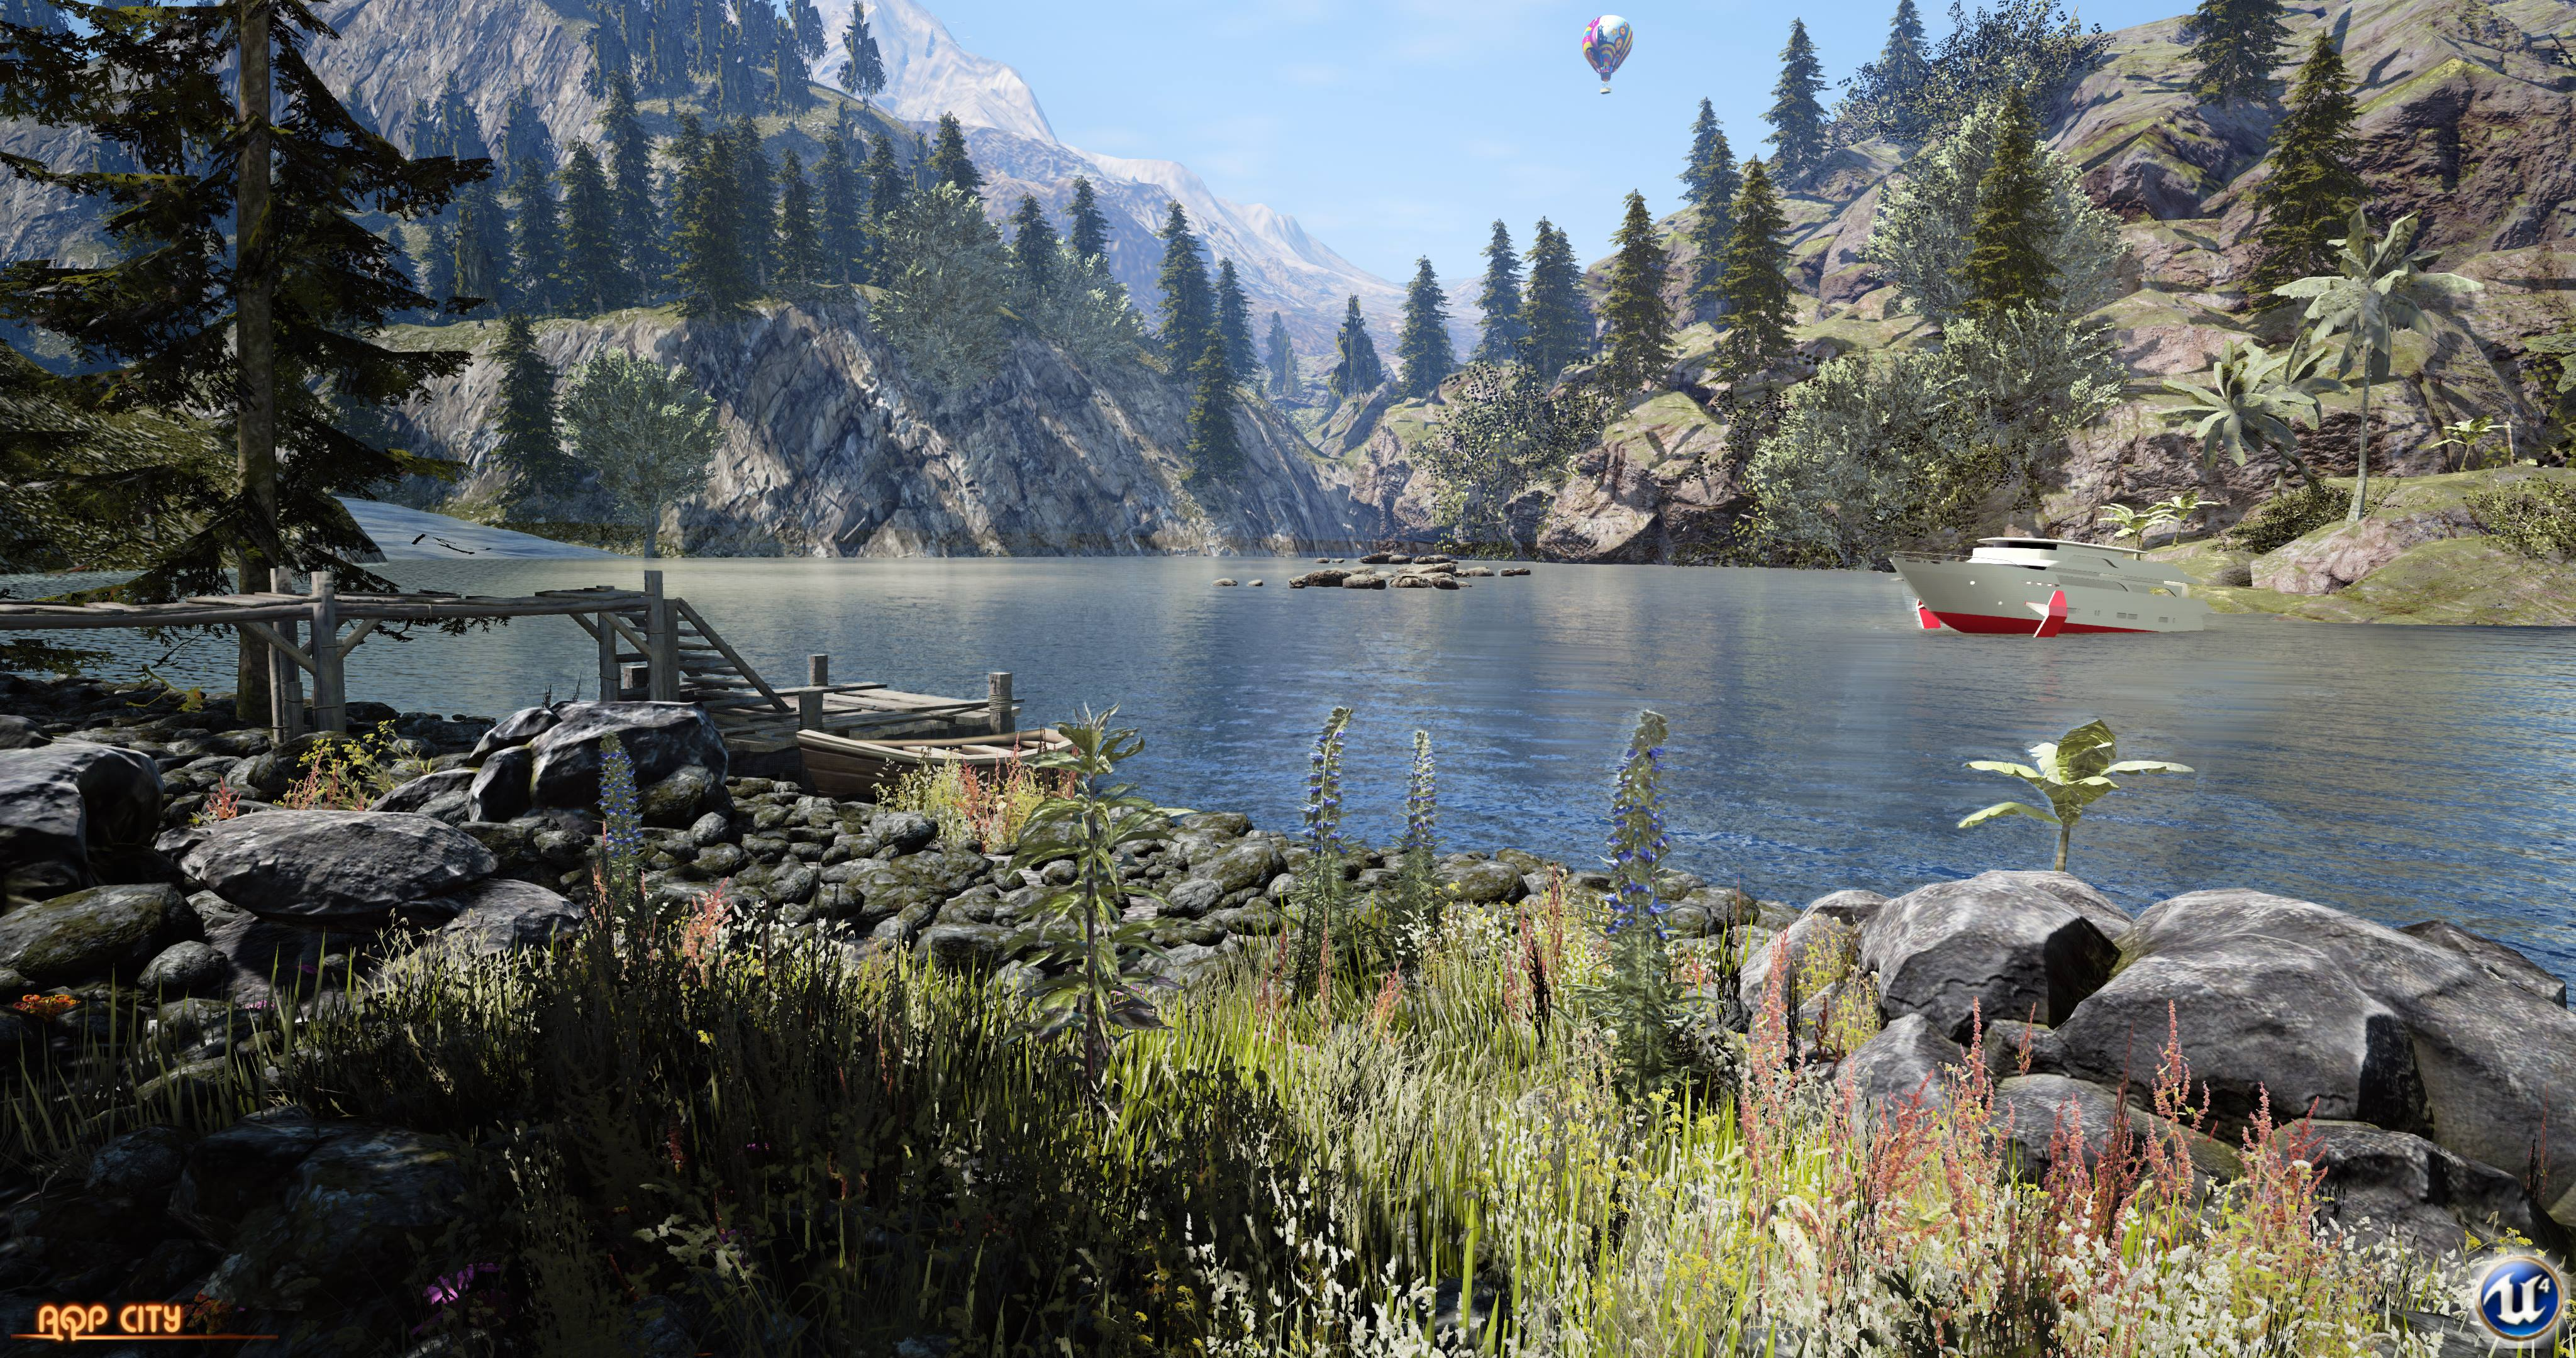 Check Out What GTA V Could Look Like in Unreal Engine 4